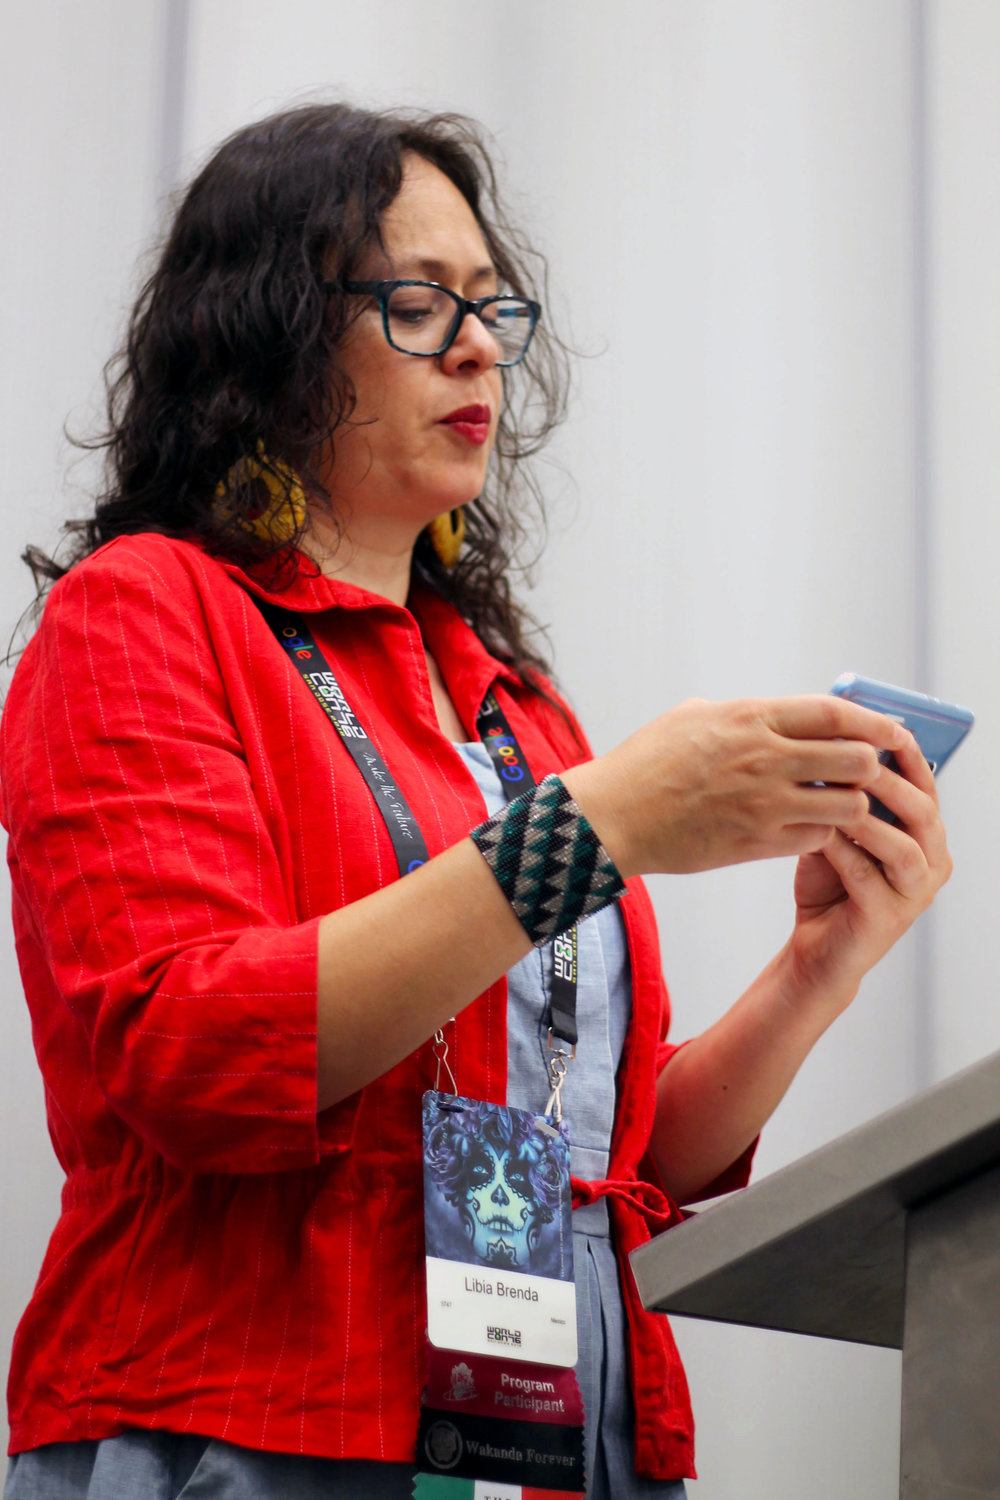 Libia Brenda at the Mexicanx Initiative English language group reading (Sent by Julia Rios; photo by Kateryna Barnes)